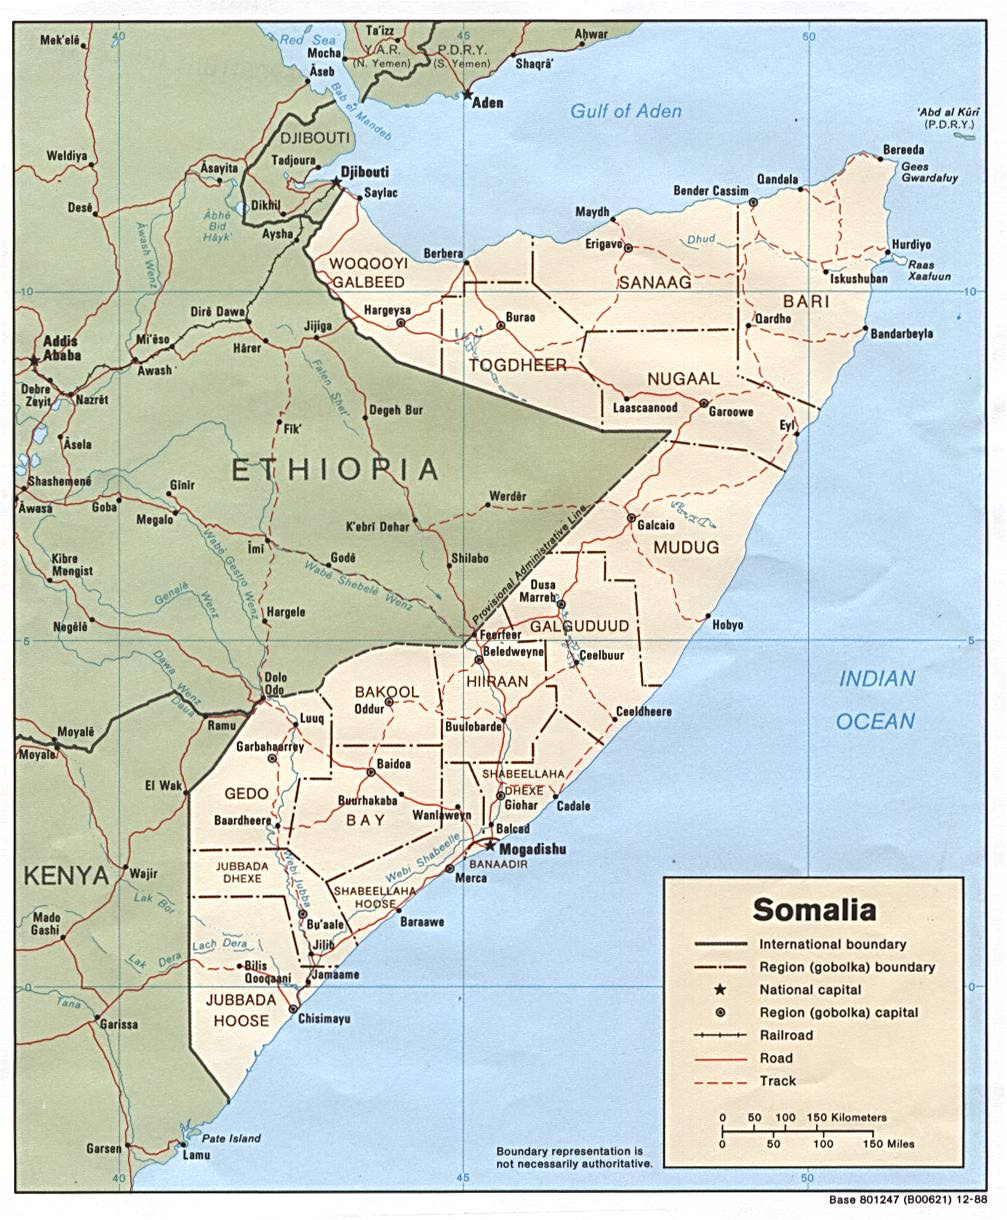 somalia on a map with 2010 04 01 Archive on Carte likewise Somalia Satellite Map also parison between U S together with Africa as well Italian Eritrea.